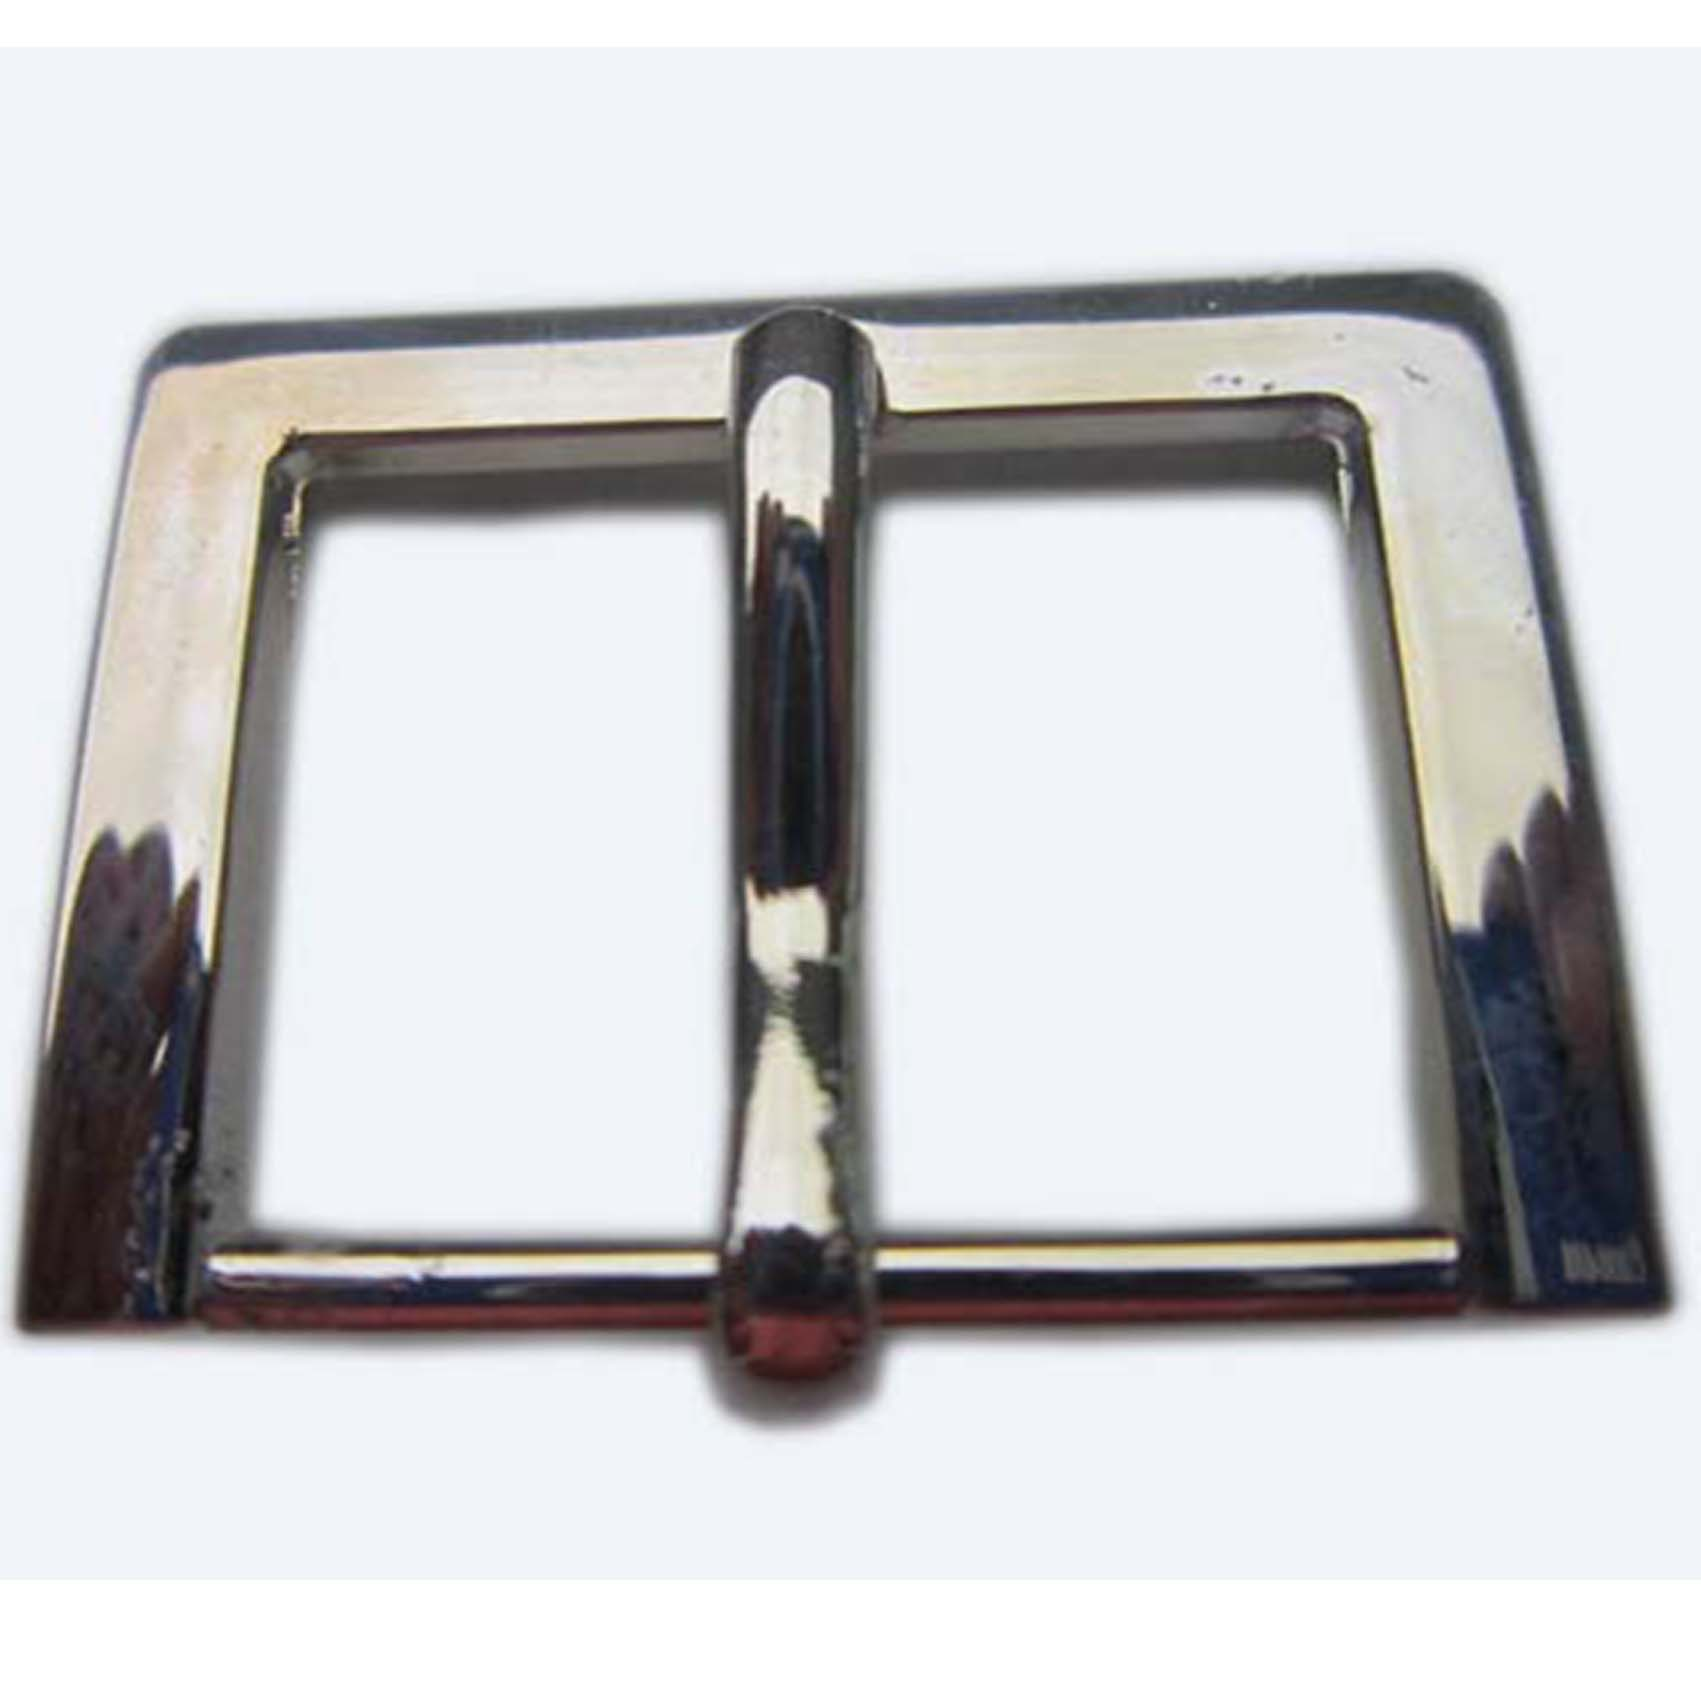 Nickel-free die casting belt buckles for men